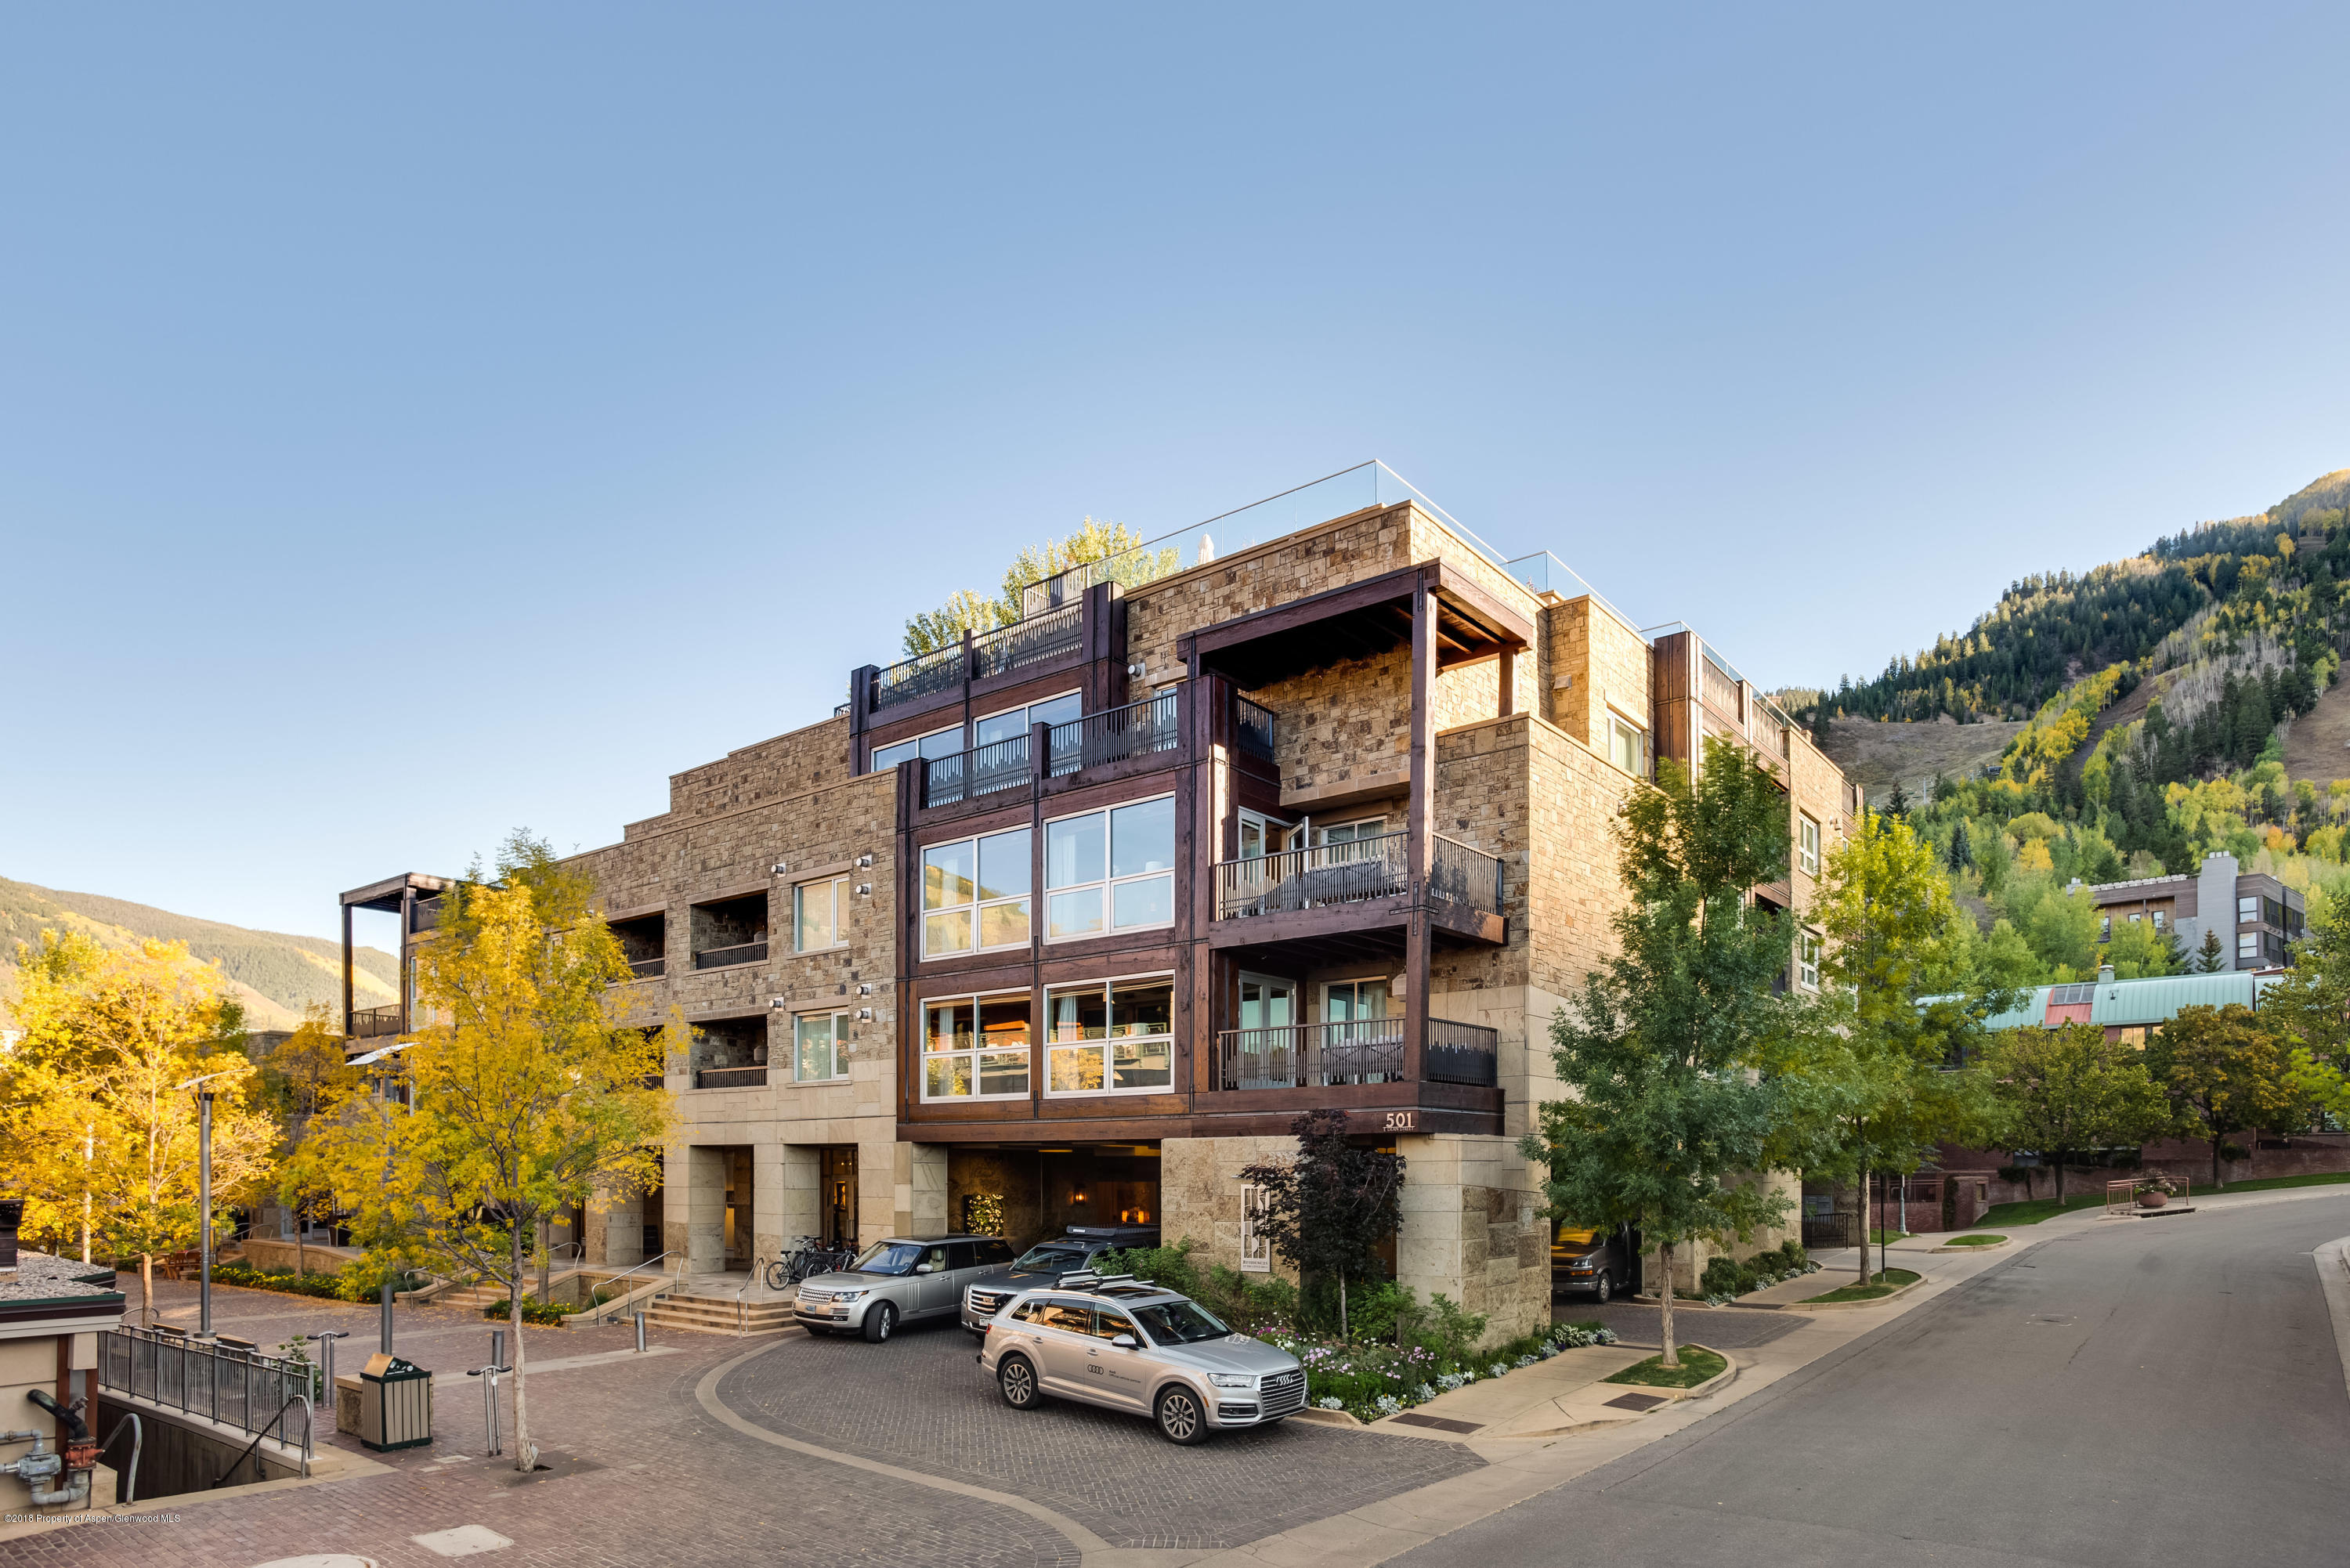 501 E Dean Street - Central Core, Colorado